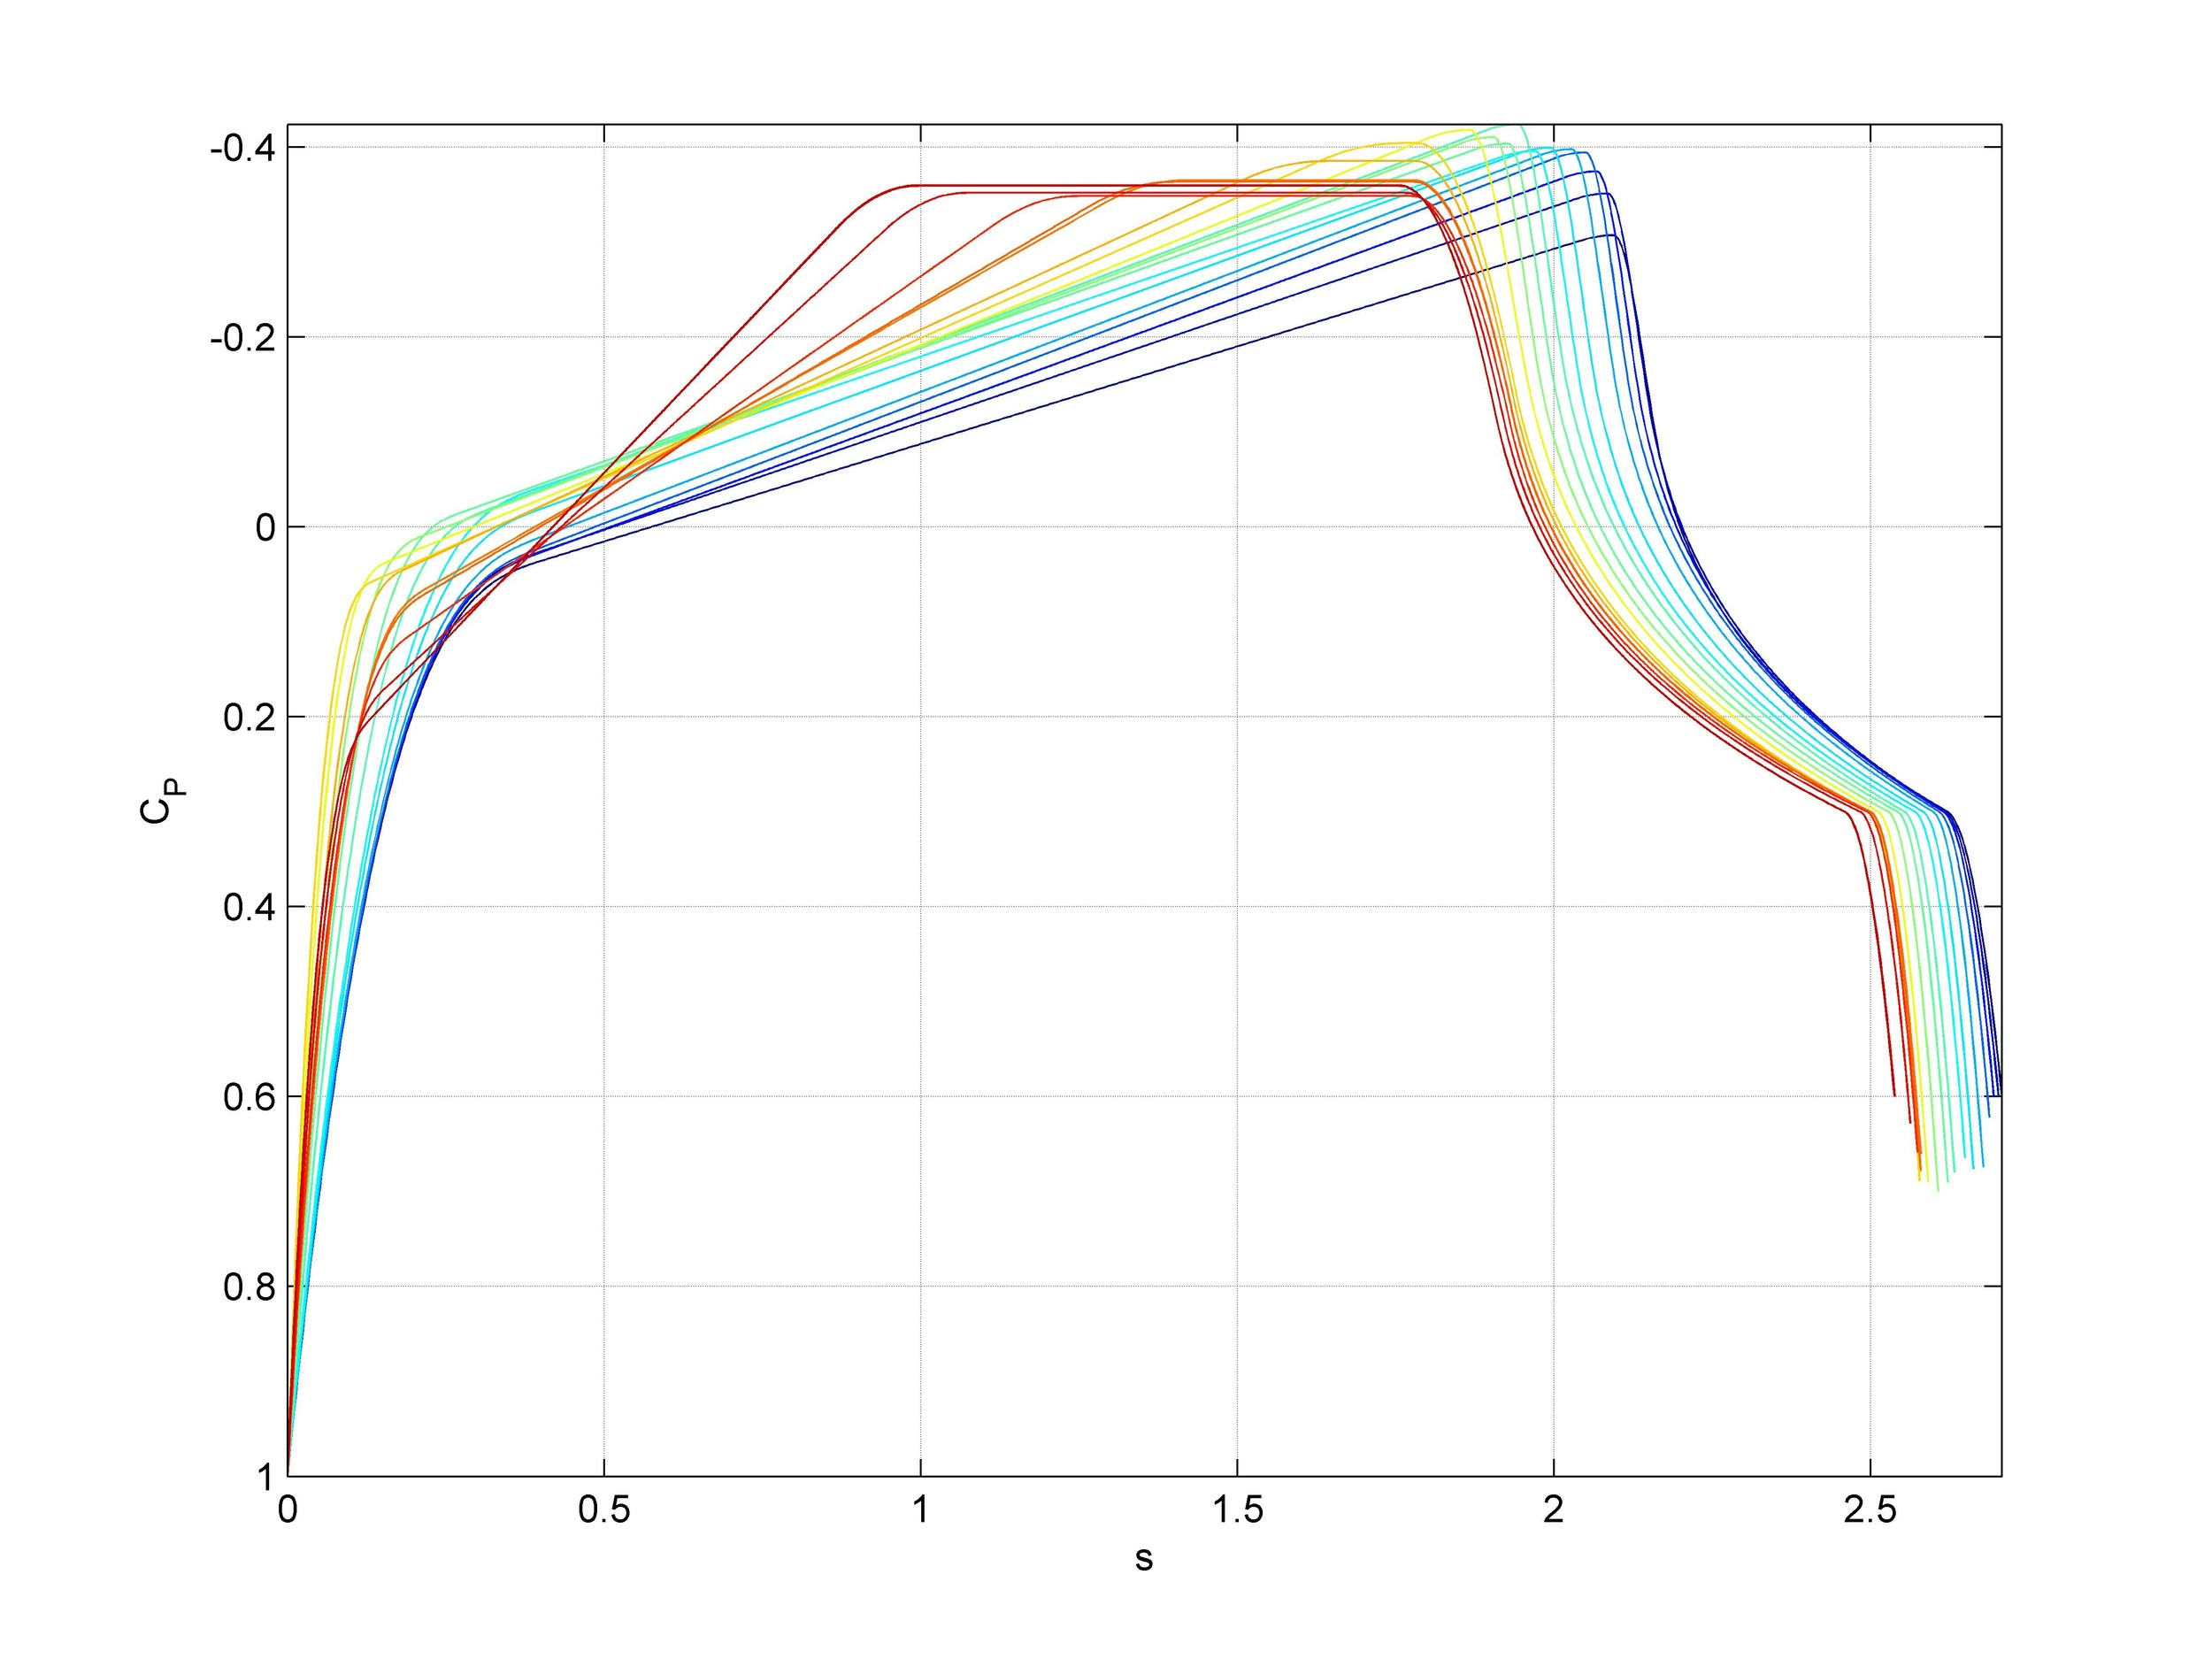 Ideal surface streamline pressure distributions for the first iteration of Eta's shape optimizations. Red curves are over the bottom of the vehicle to Blue curves over the top.